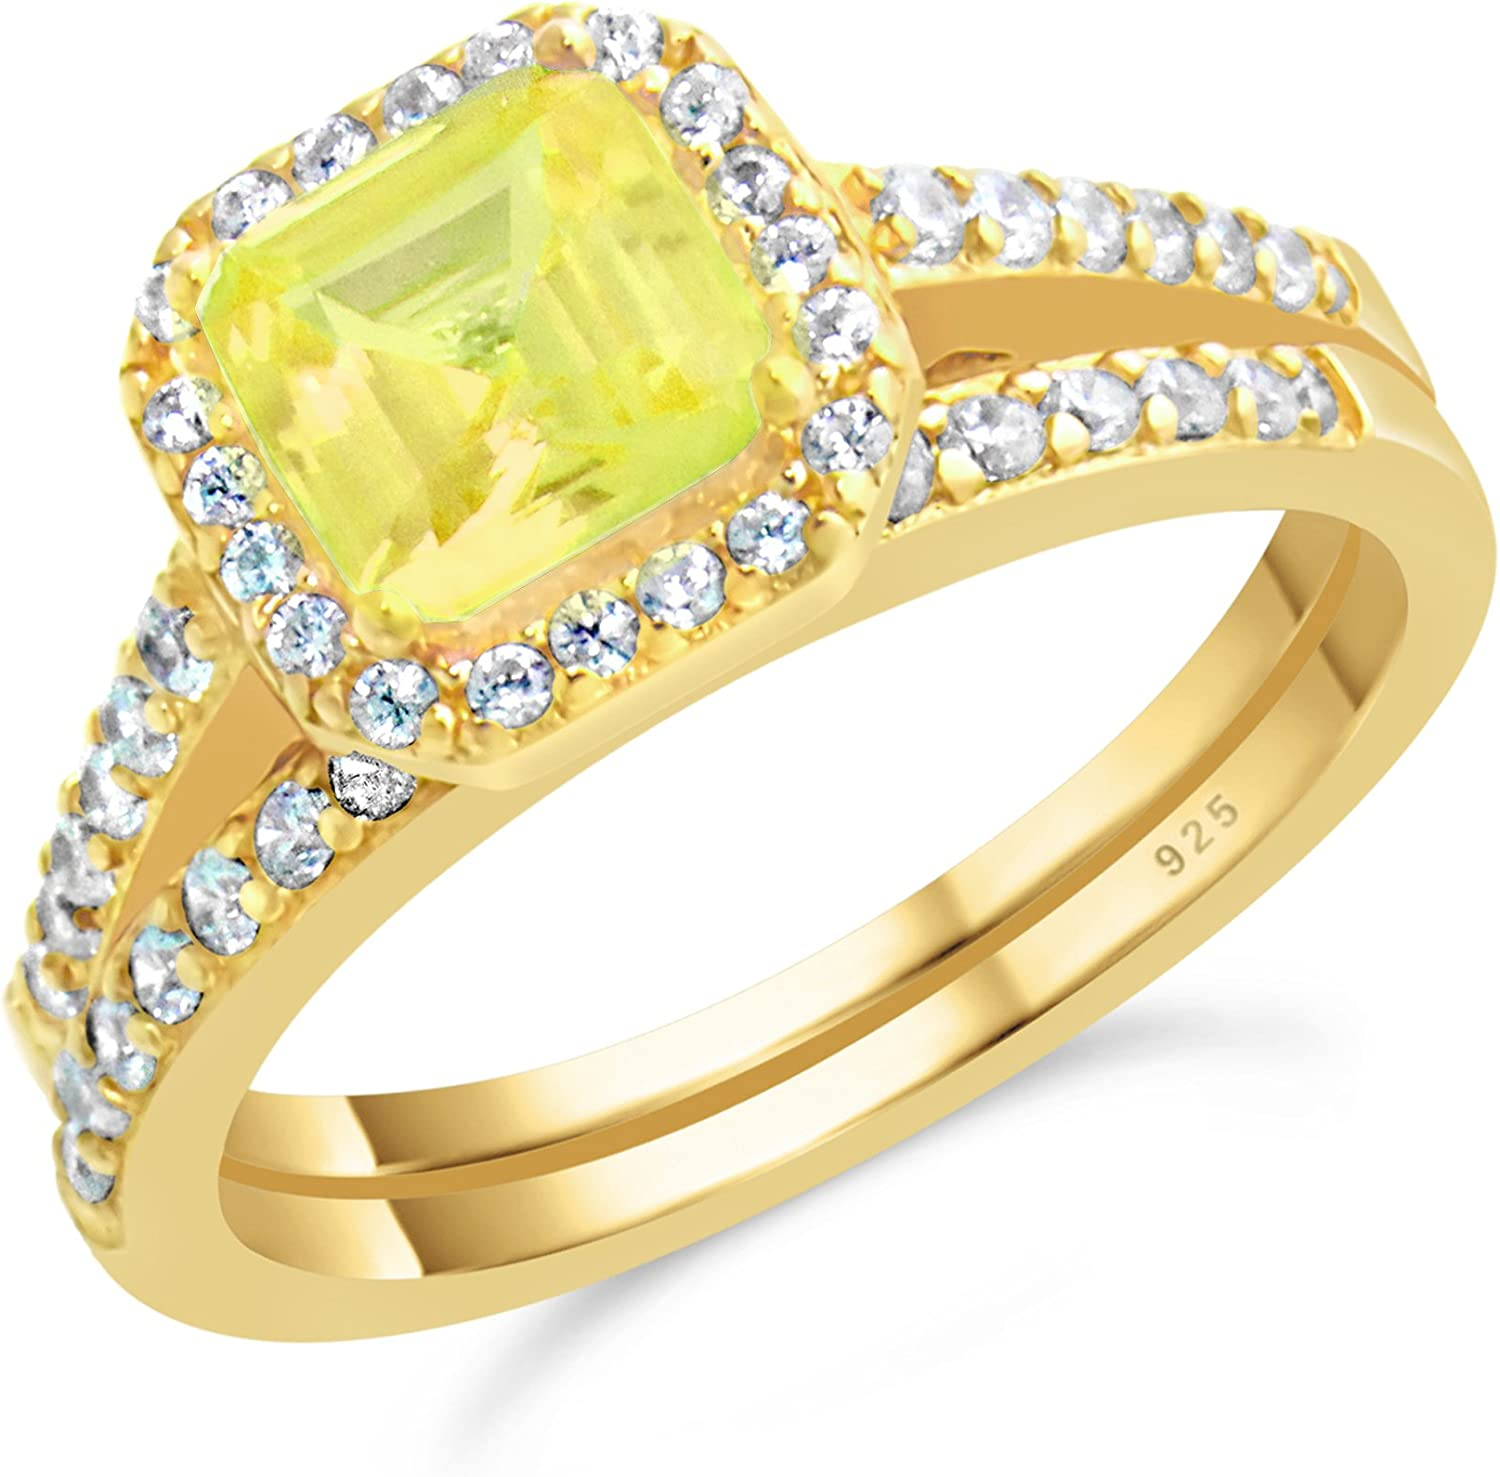 14K Yellow Gold Plated Solid Sterling Silver Fashion Ring with Cubic Zirconia Accent-Size 6.5 JANL